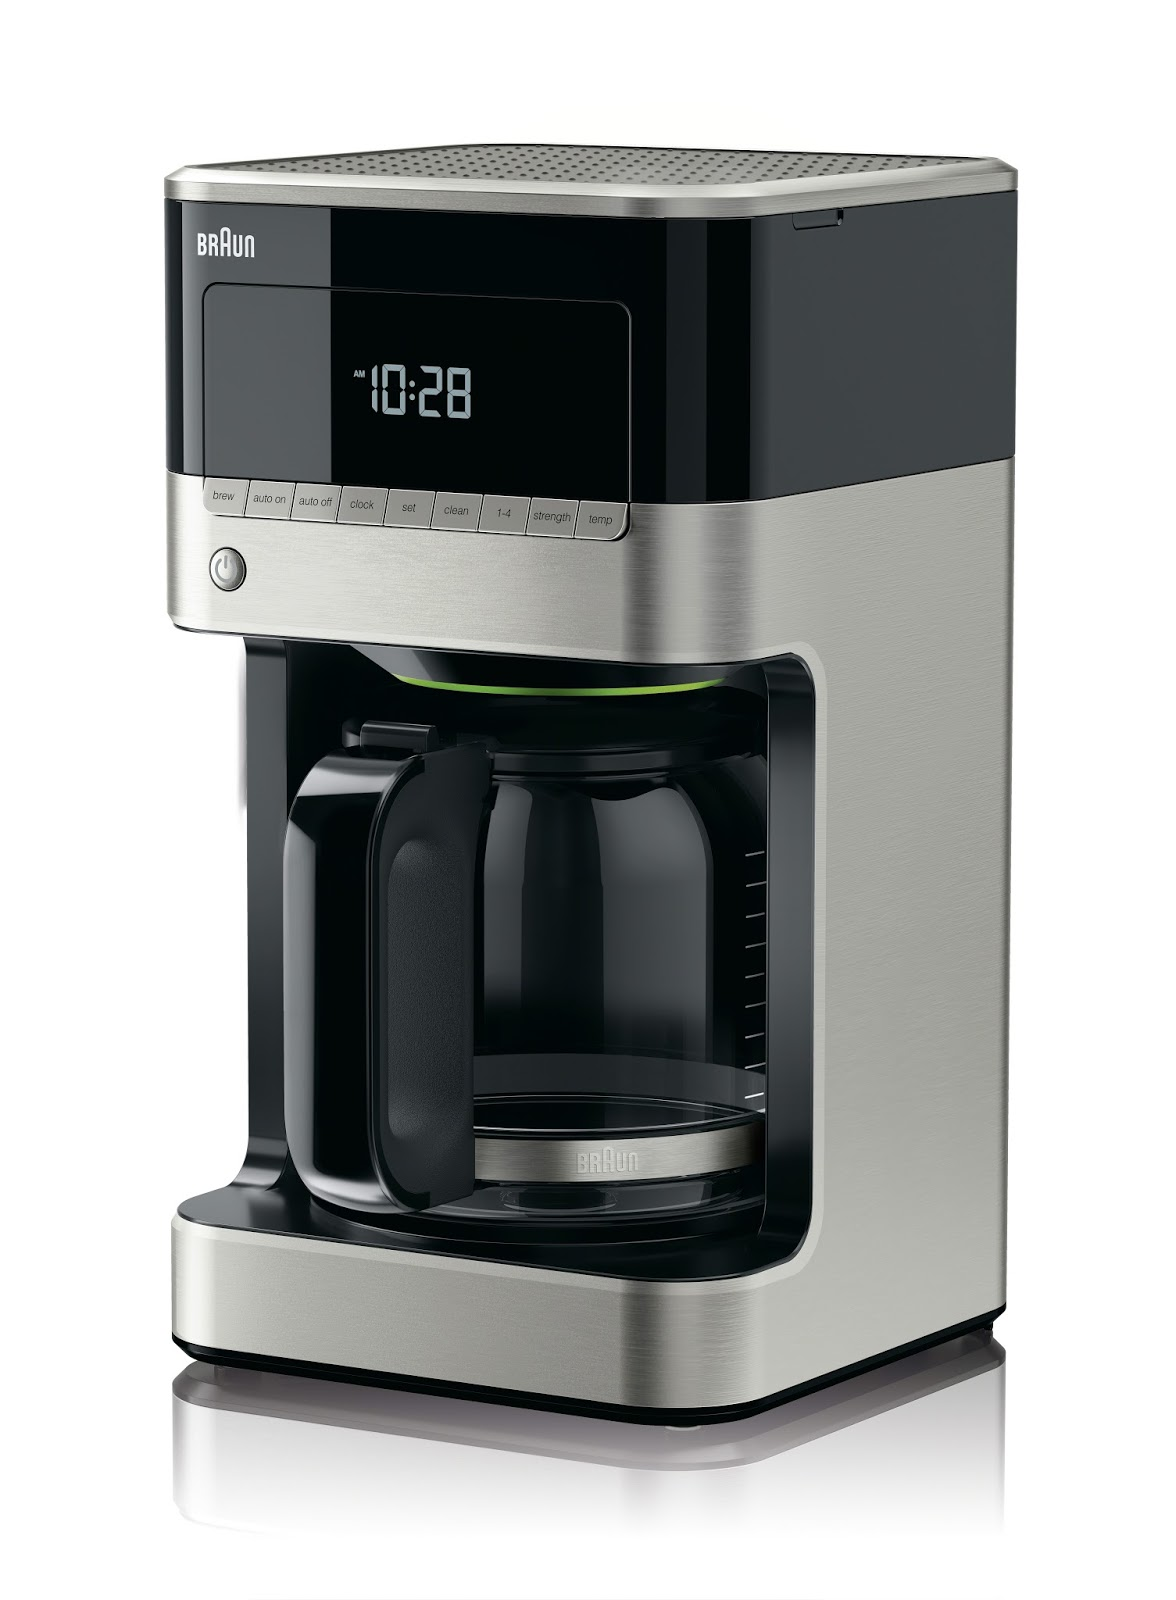 Braun Coffee Maker How To Clean : 504 Main by Holly Lefevre: Mastering The Wedding Registry